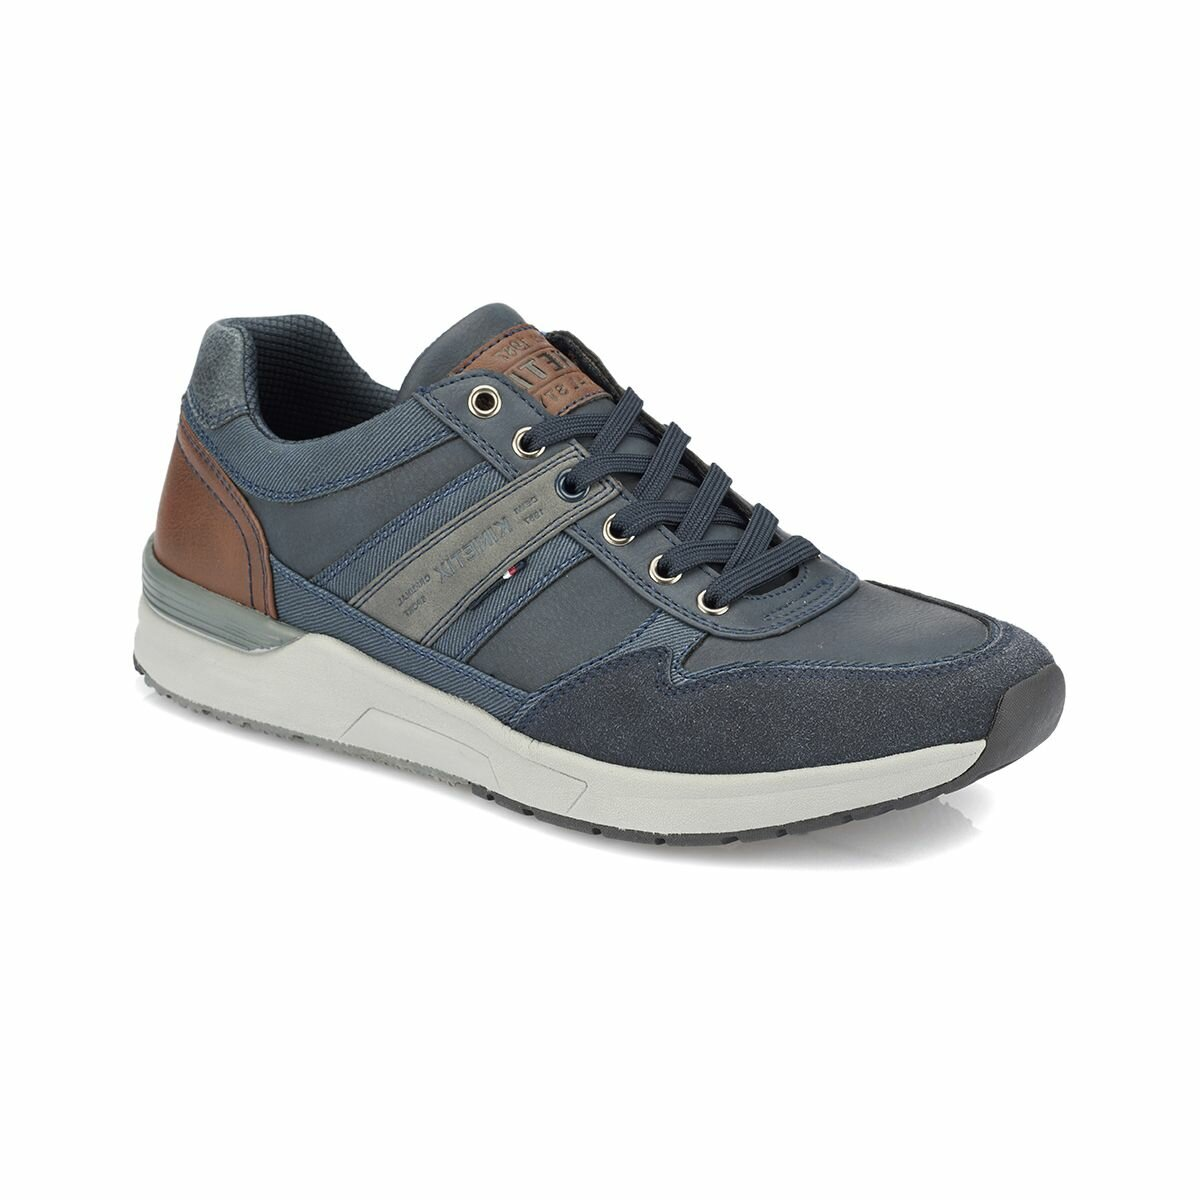 FLO ALF Navy Blue Men 'S Sneaker Shoes KINETIX